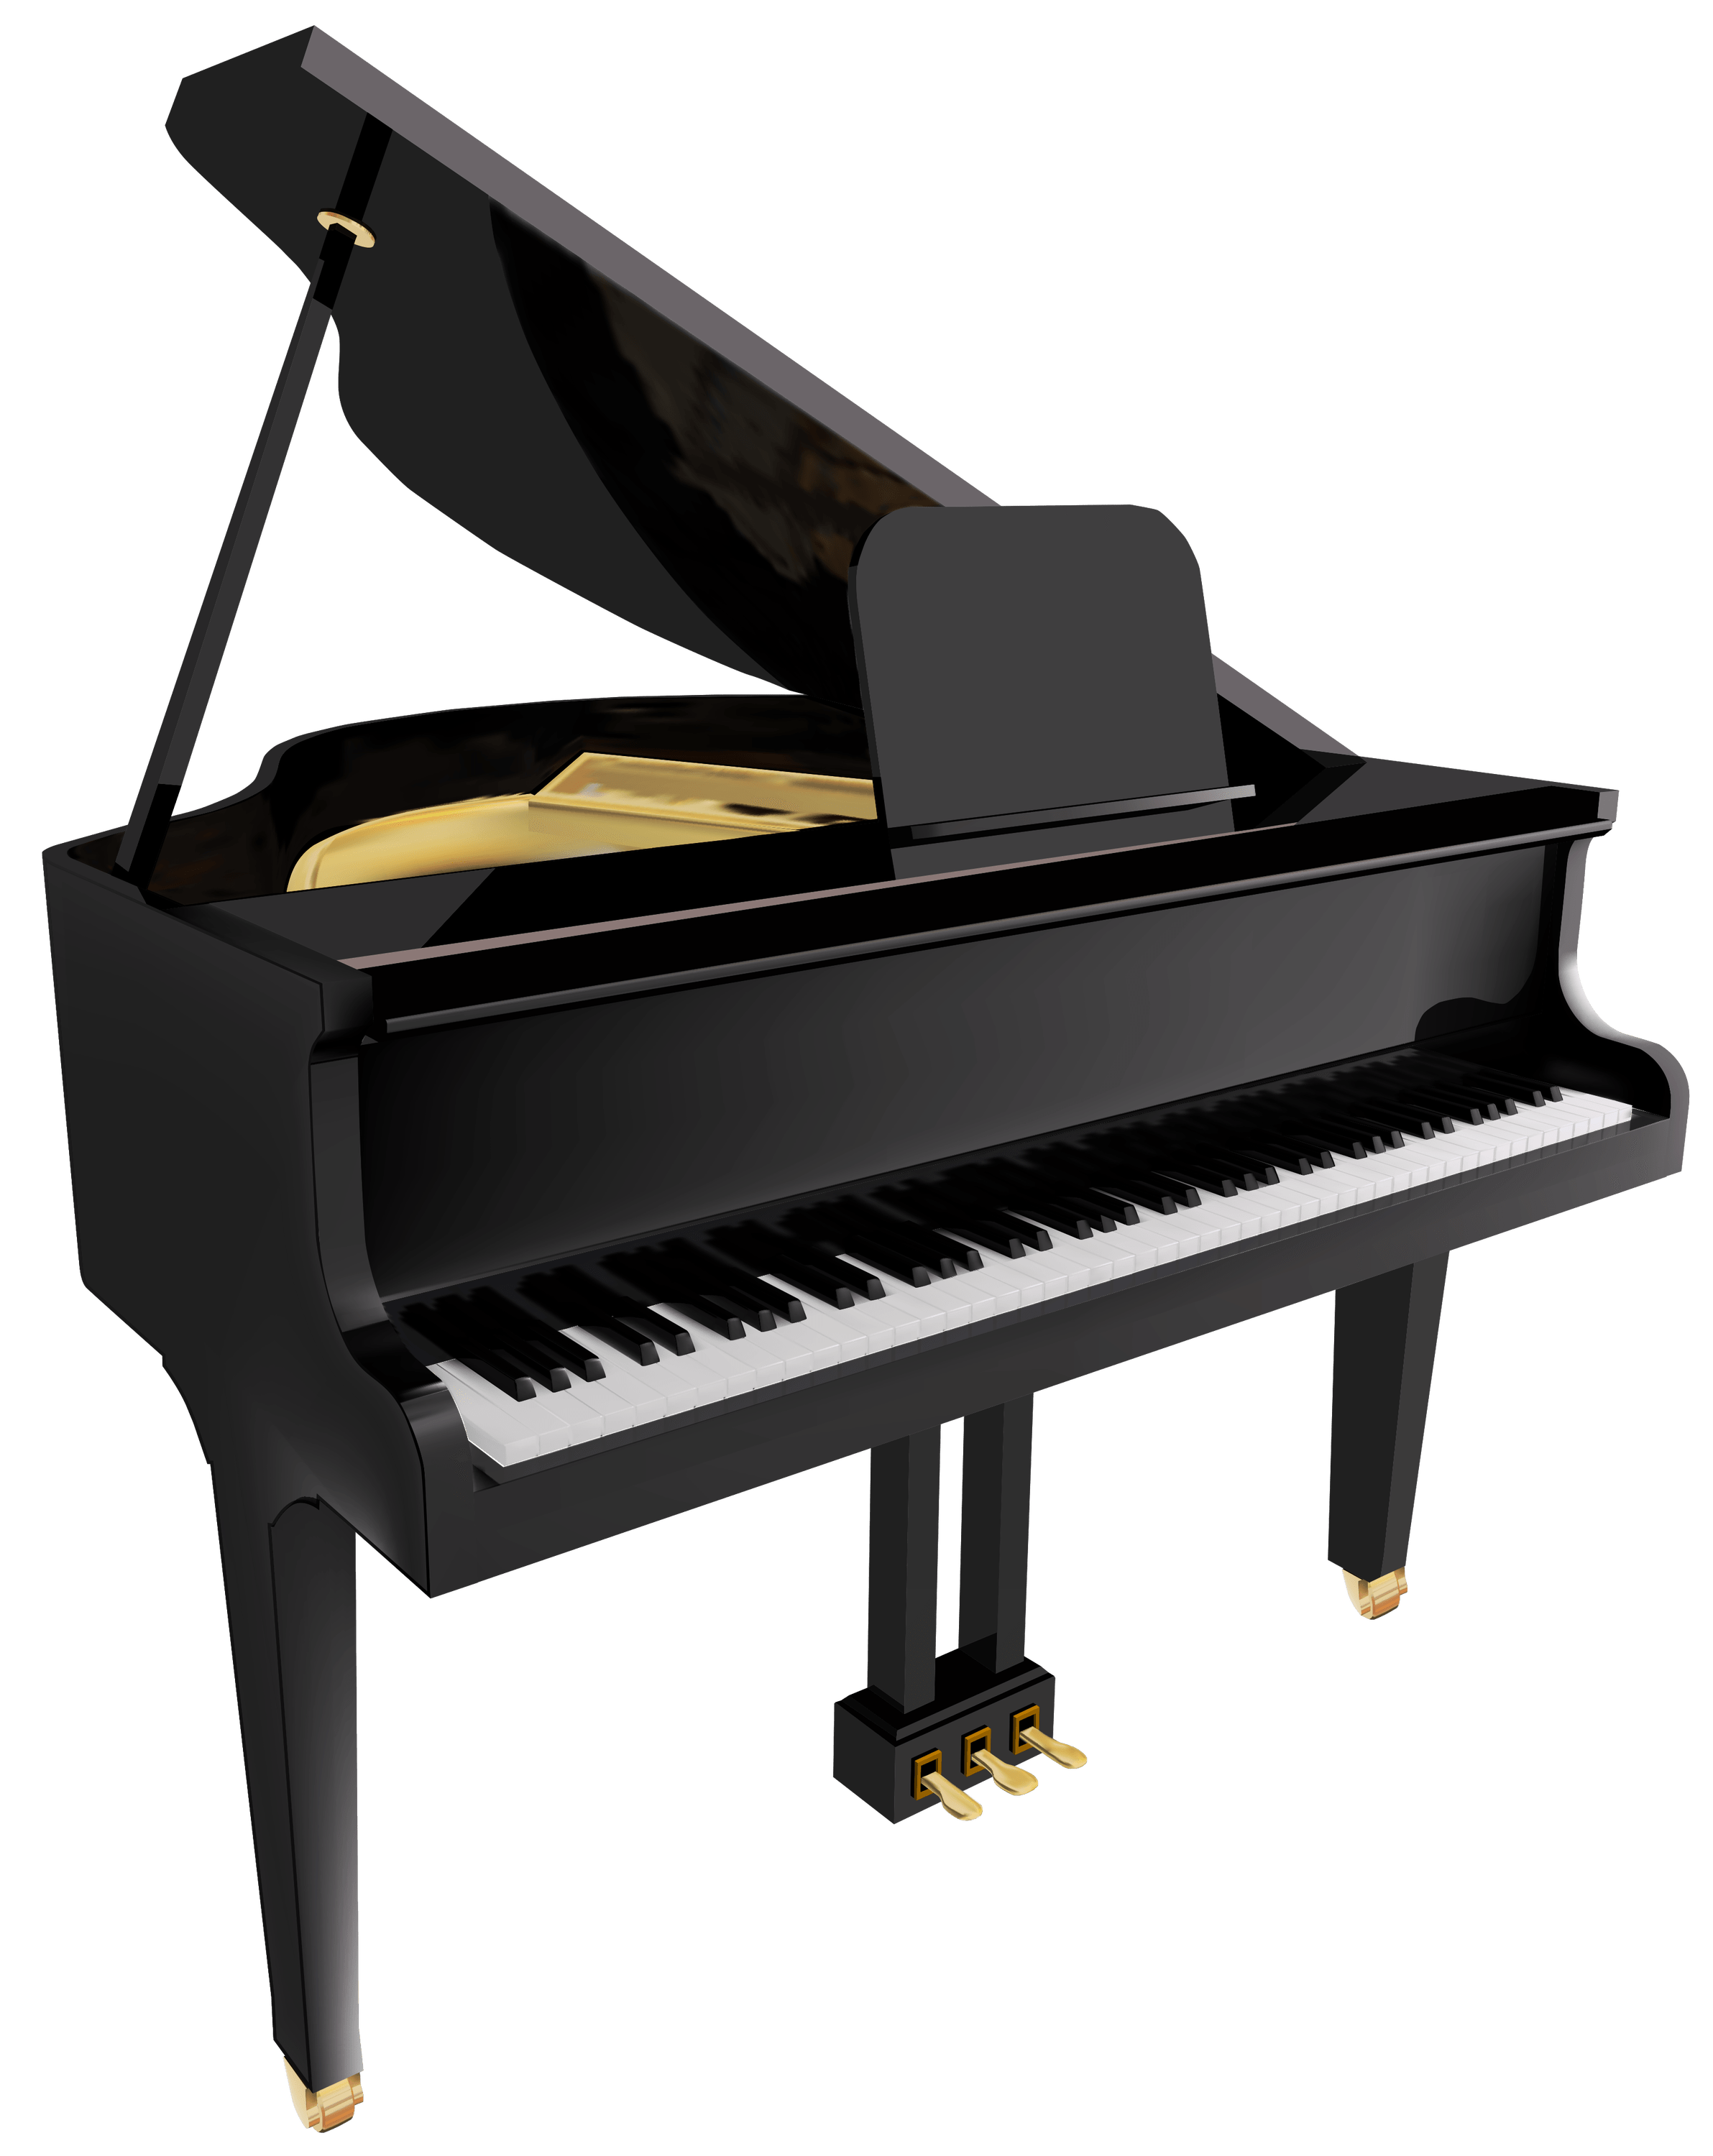 Transparent pianos. Piano png images stickpng